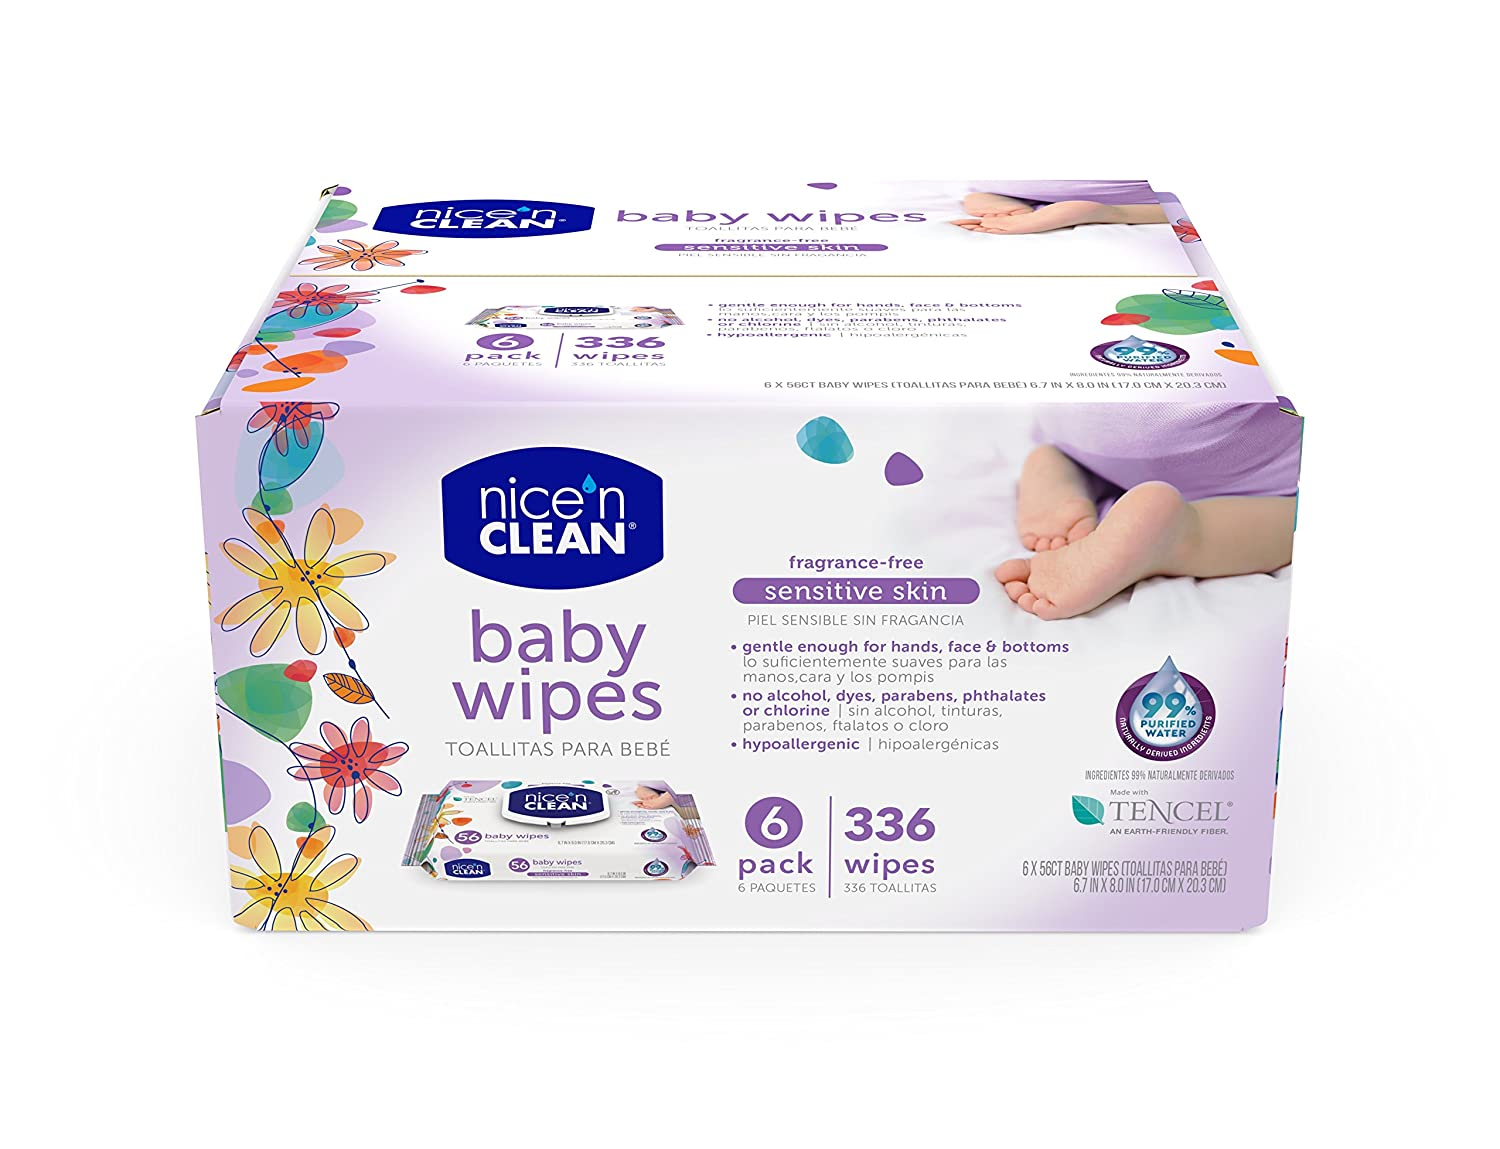 Amazon.com : Nice n Clean Sensitive Skin Baby Wipes, Fragrance-Free, 336 Count : Health & Personal Care